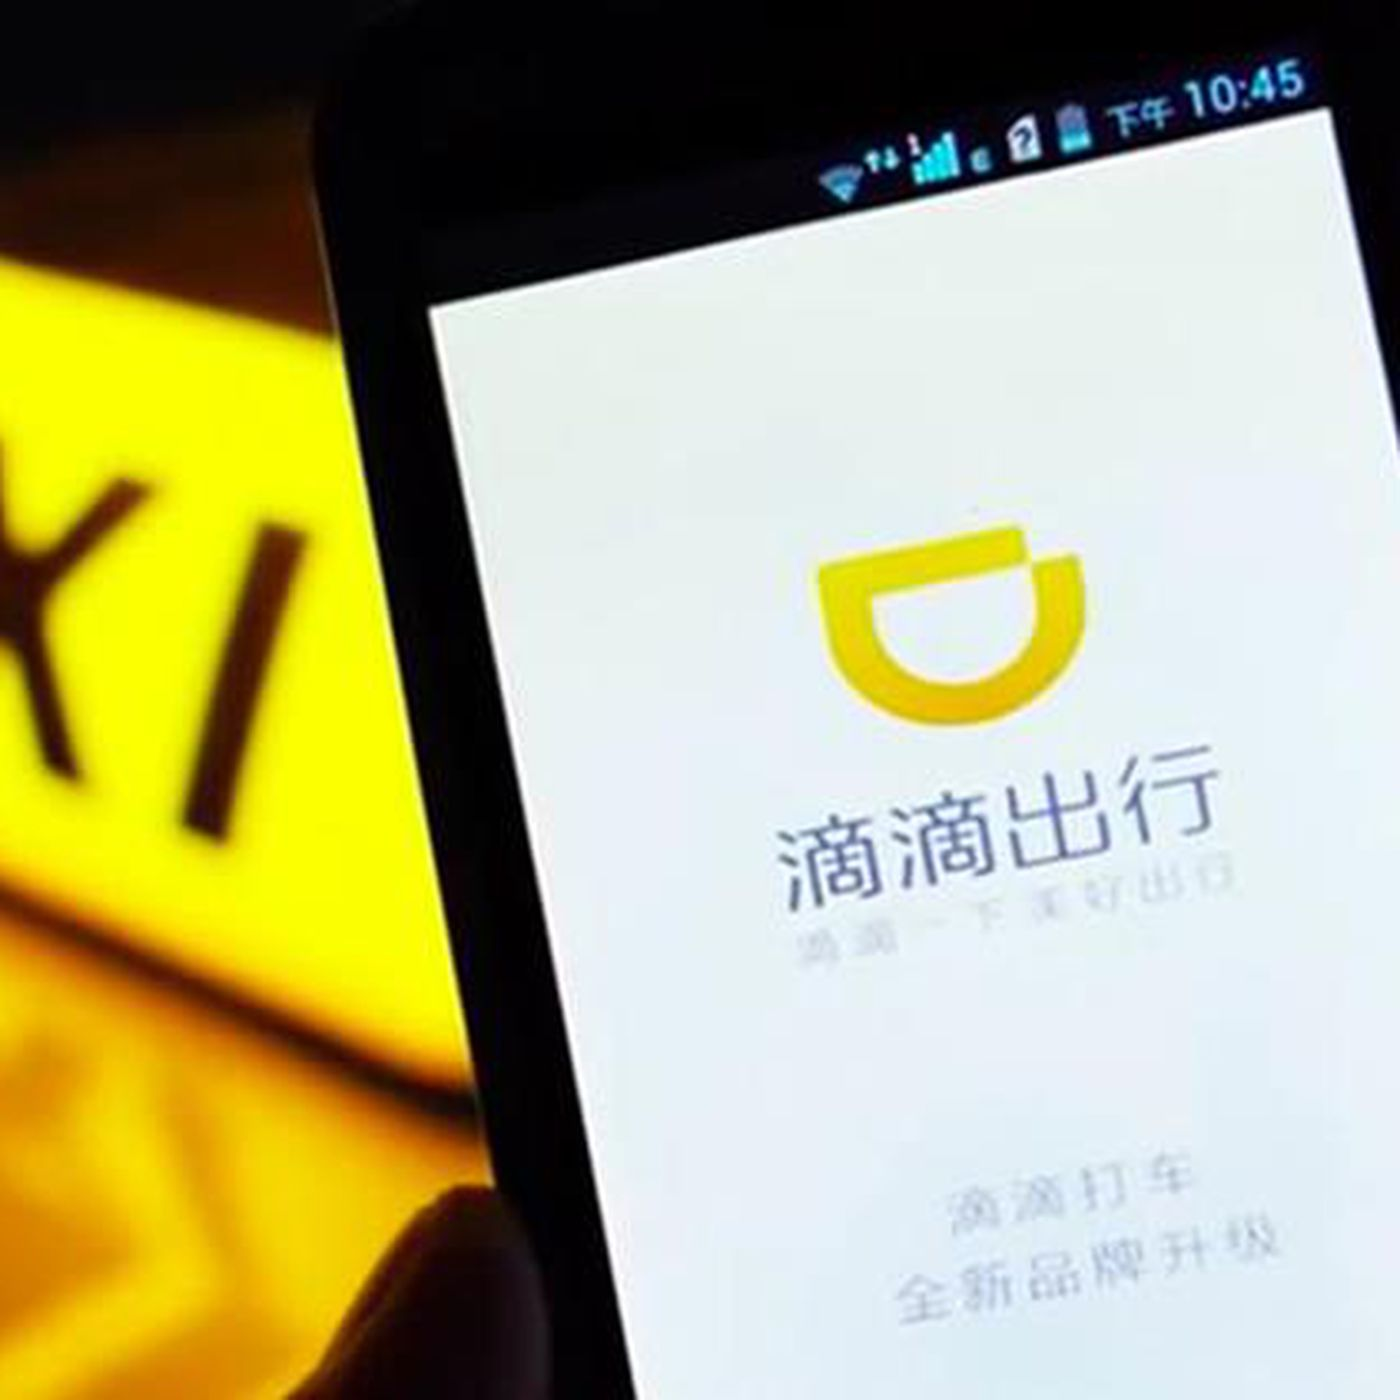 The ride-sharing app that beat Uber in China is available in English